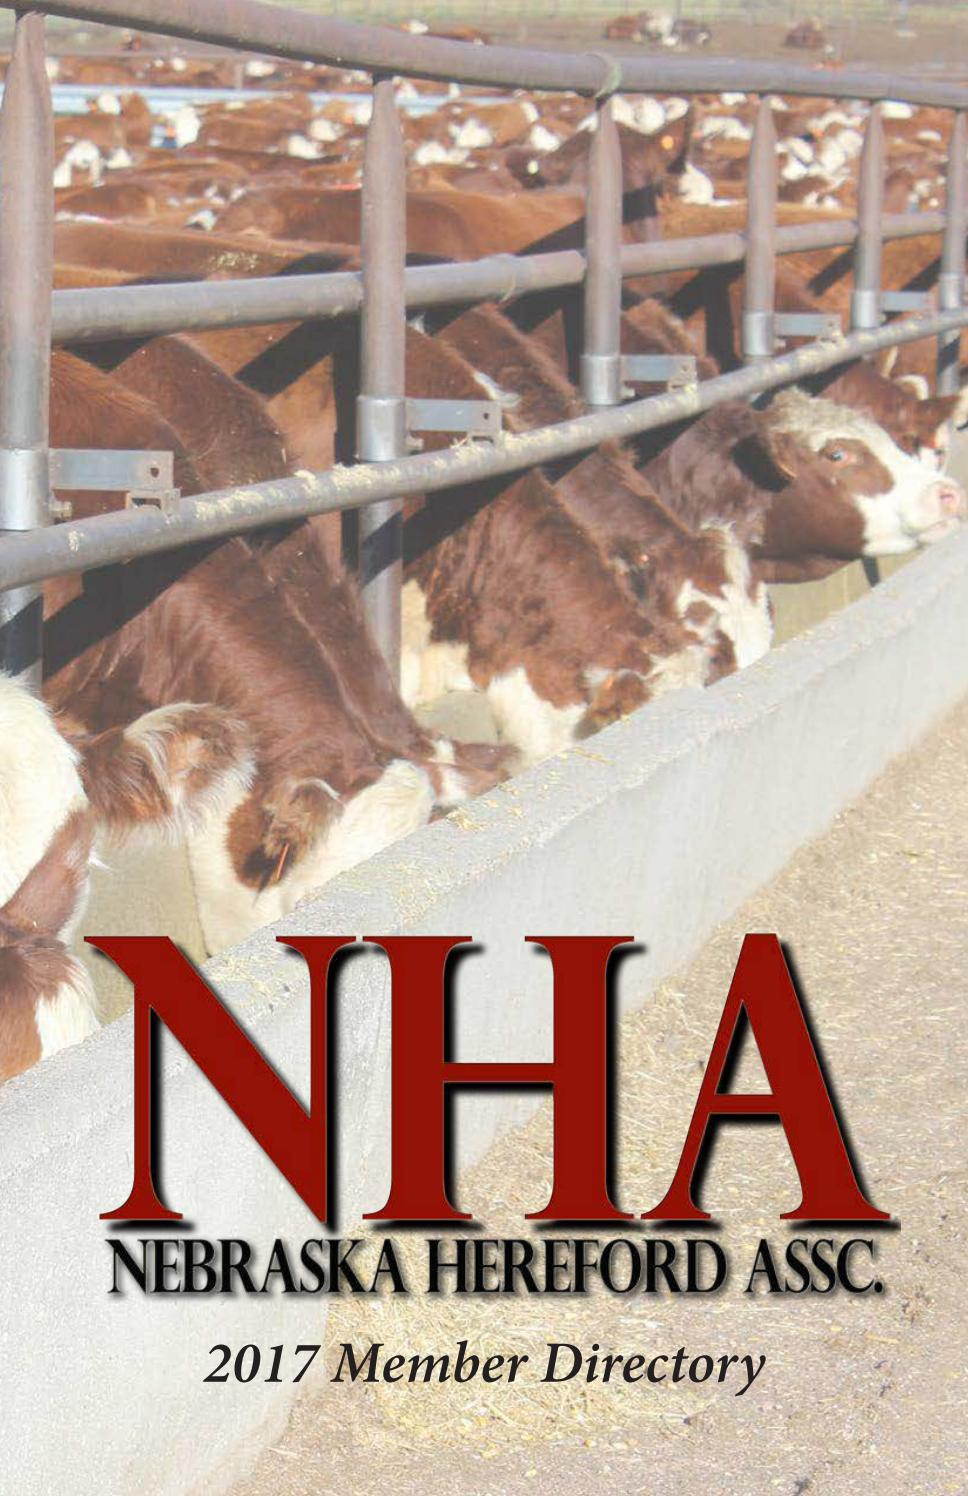 Nebraska adams county ayr 68925 - Nebraska Hereford Association 2017 Membership Directory By Livestockdirect Issuu